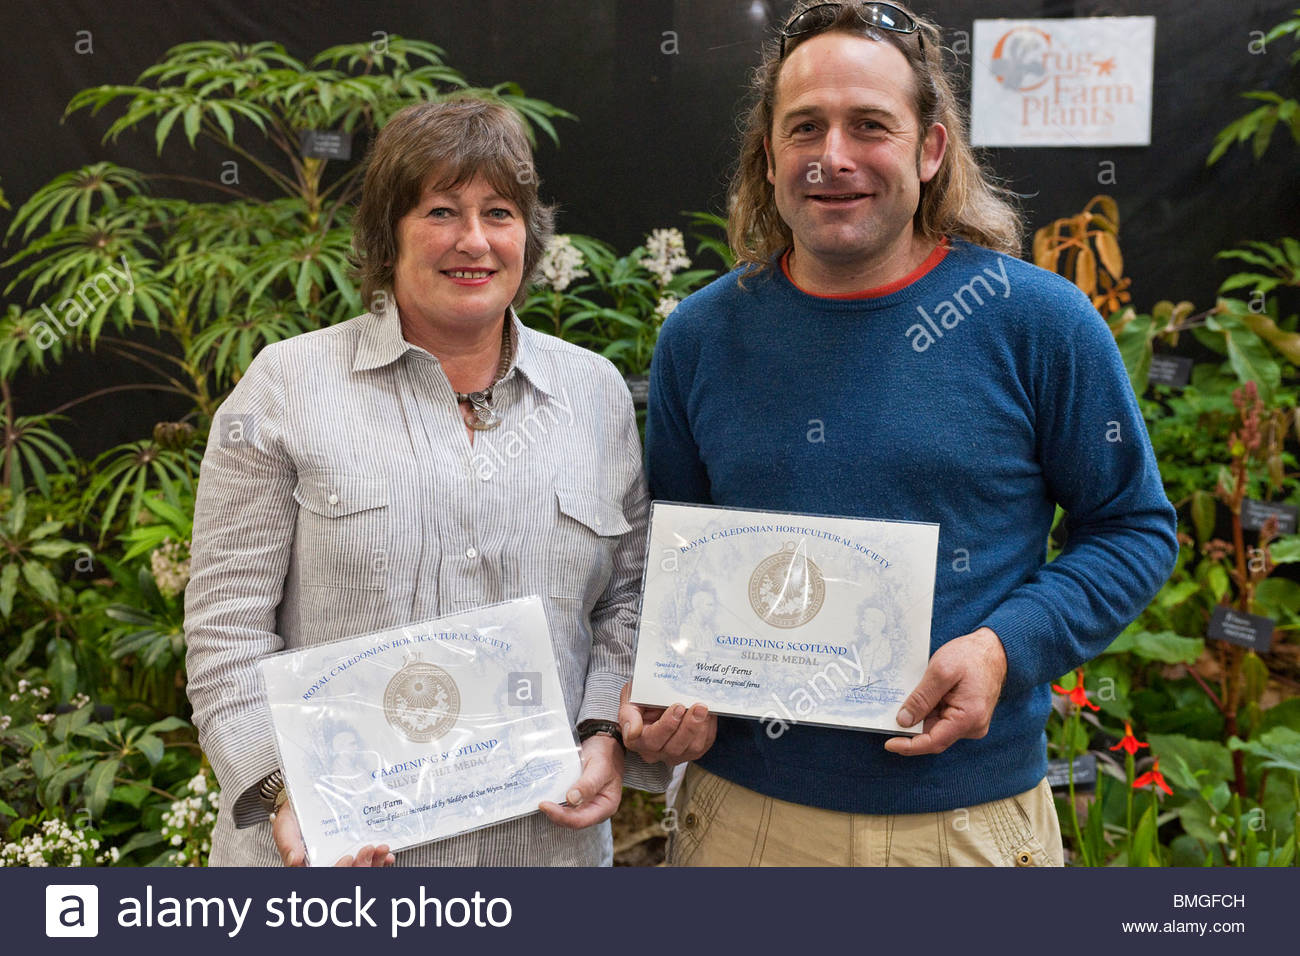 Sue Wynn Jones of Crug Farm Plants and Ben Kettle from World of Ferns N Wales at Gardening Scotland 2010 - Stock Image